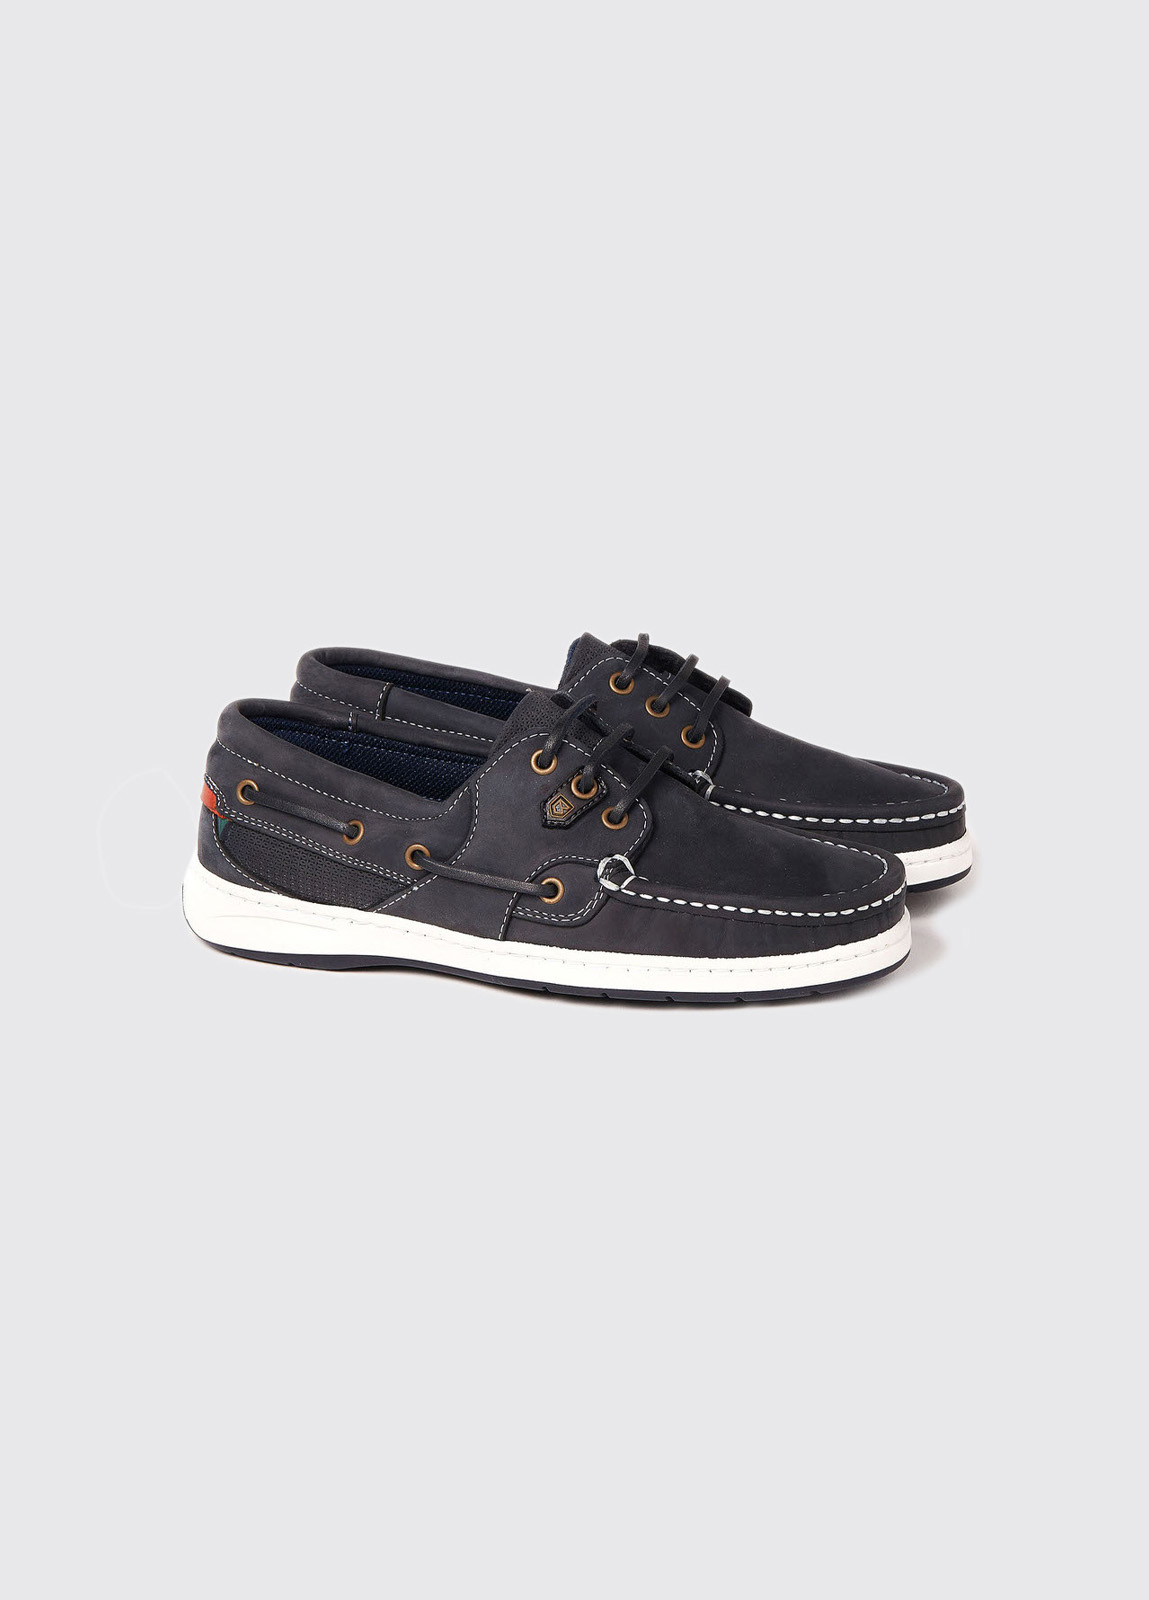 Auckland Loafer - Navy